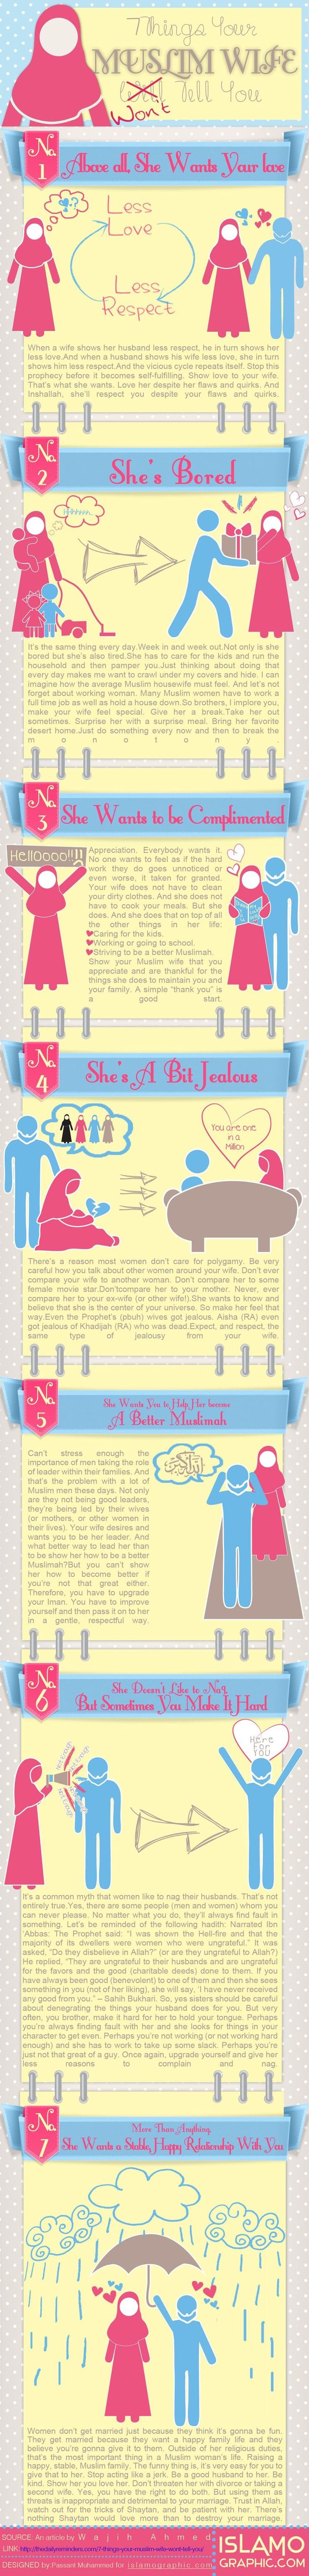 Things Your Muslim Wife Won't Tell You